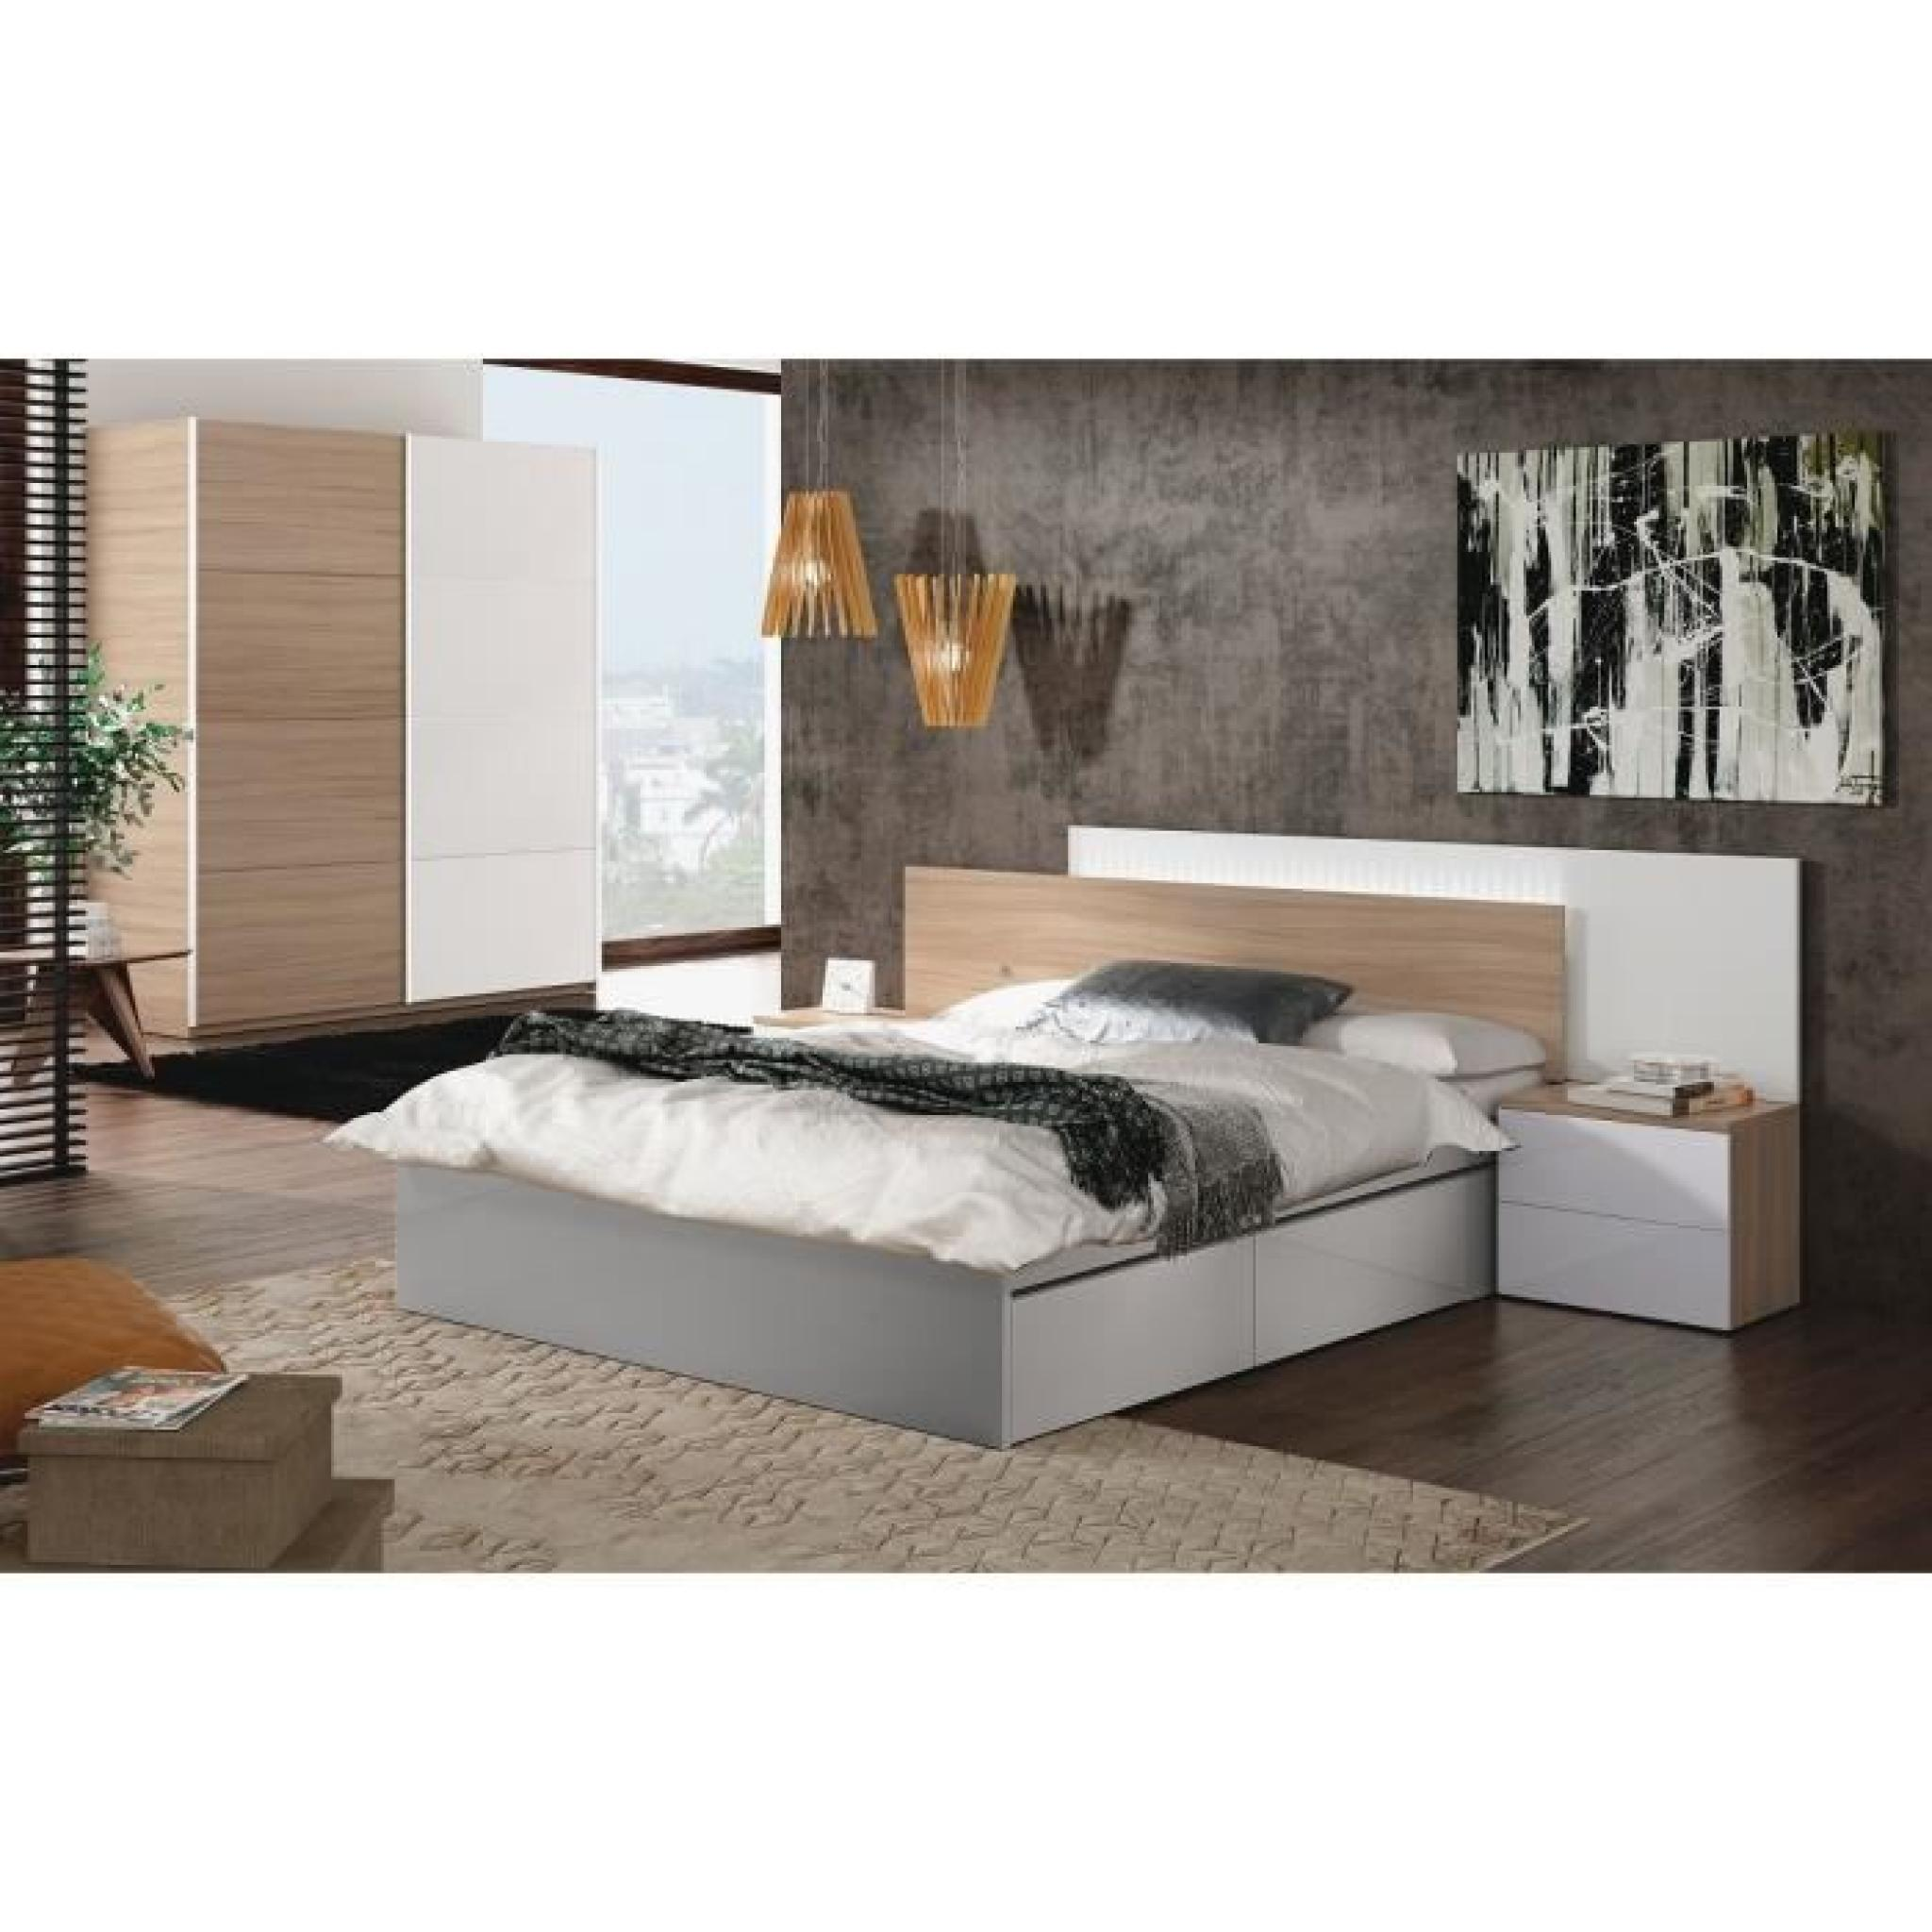 avina t te de lit avec led 258 cm 2 chevets blanc. Black Bedroom Furniture Sets. Home Design Ideas